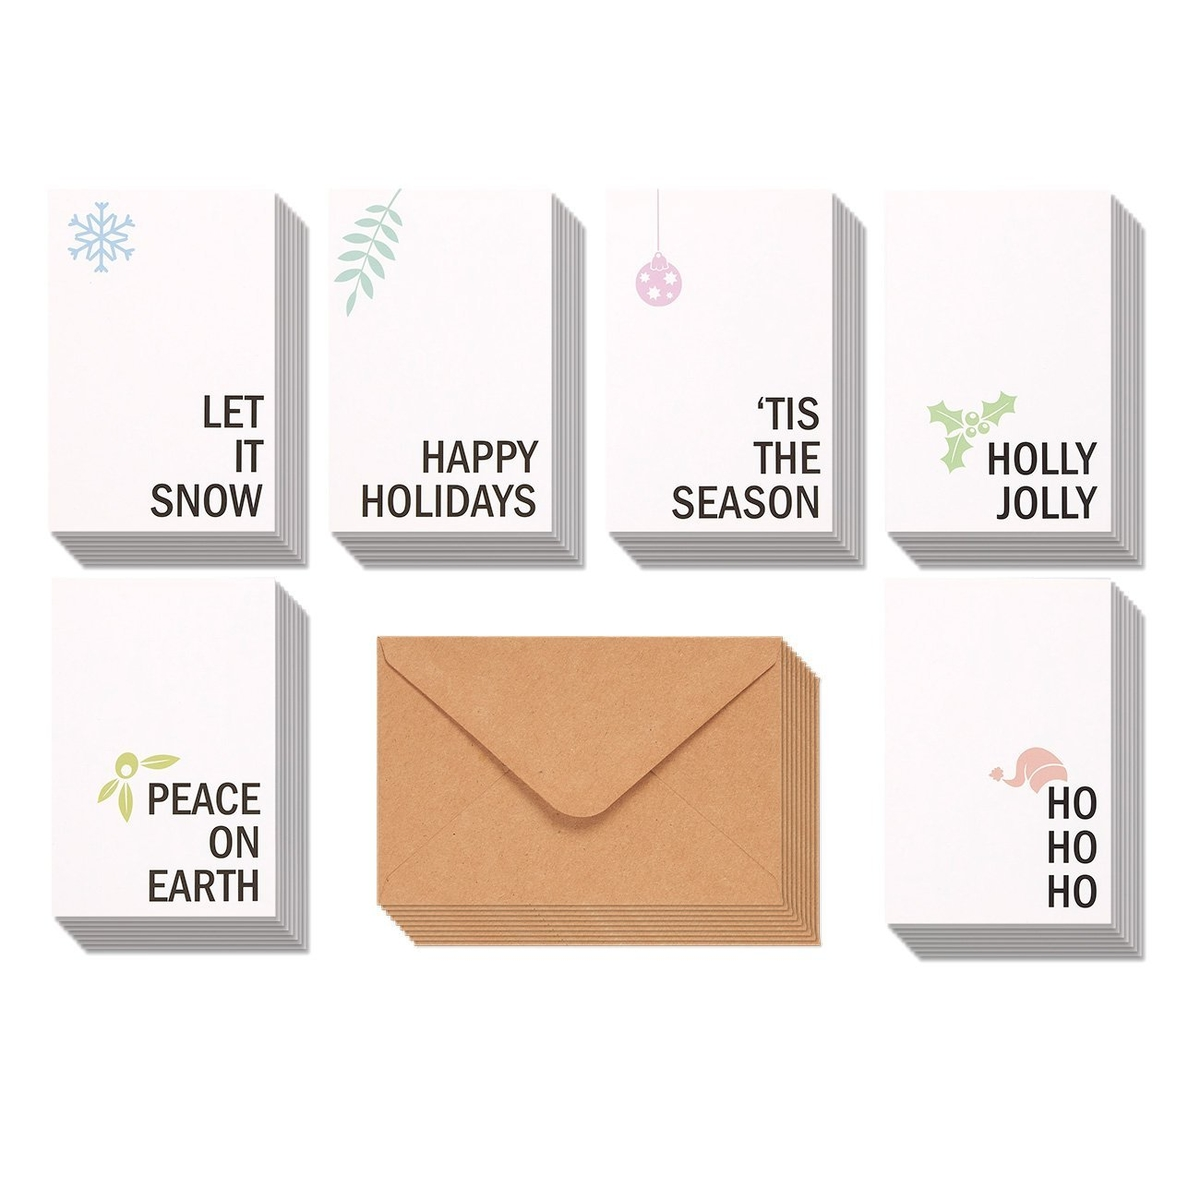 These holiday cards are too merry to miss dealtown us patch keep your warm wishes simple and chic with greeting cards that cut right to the chase each of these six designs has a simple holiday message and m4hsunfo